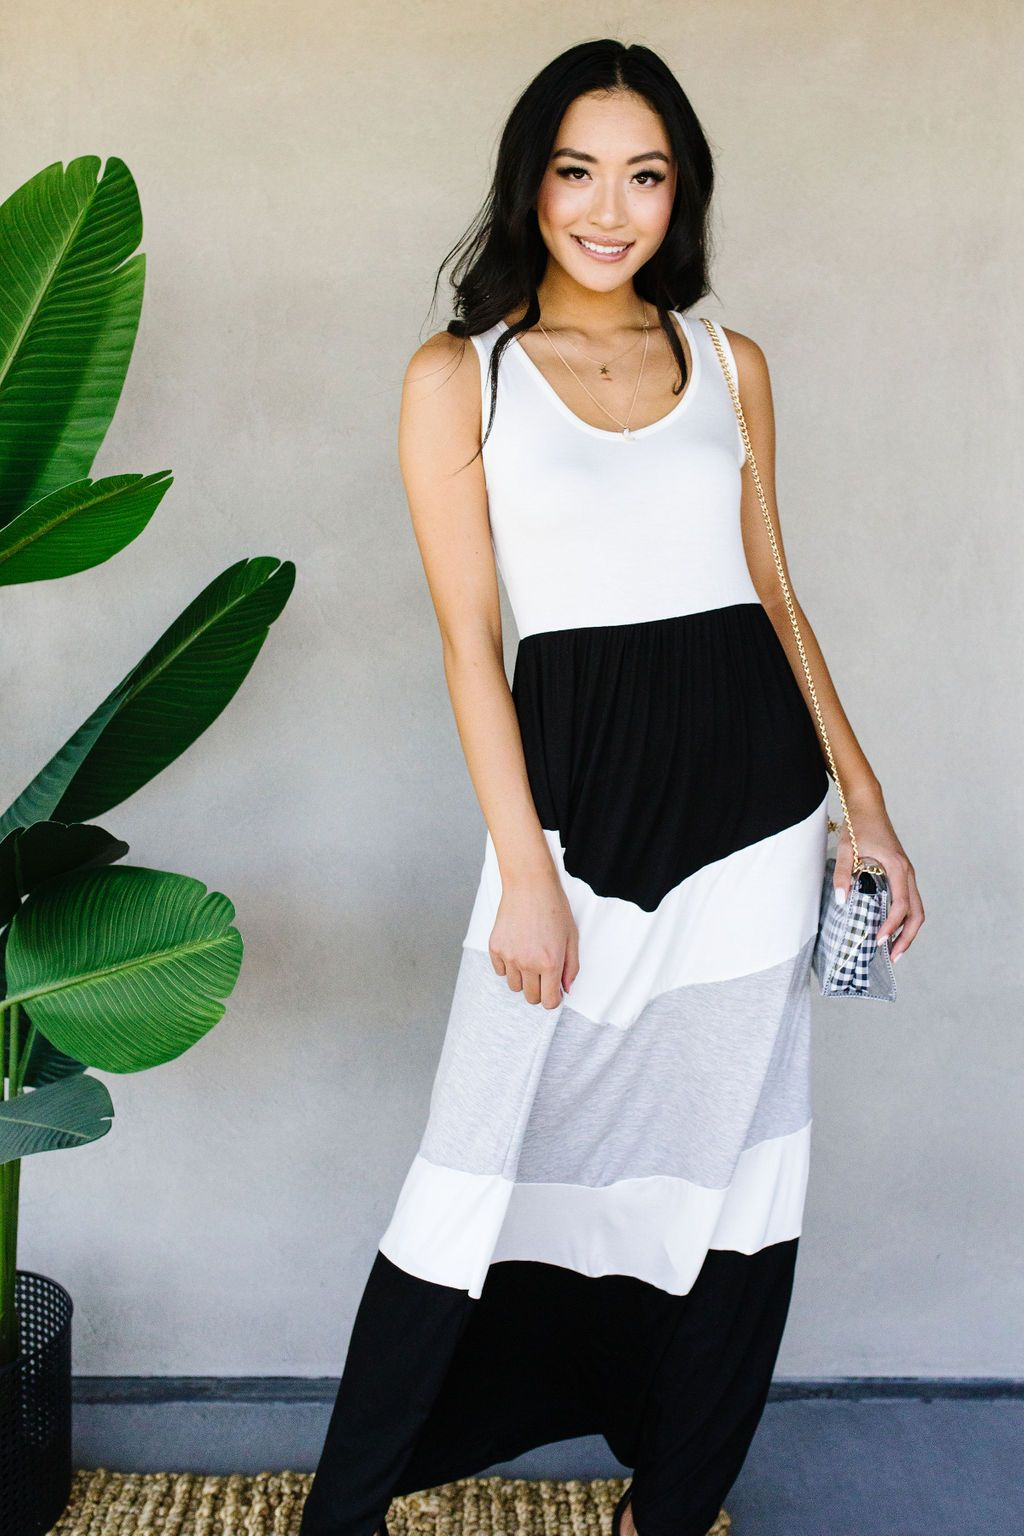 Chevron Skirt Tank Maxi Dress In Ivory-[option4]-[option5]-[option6]-[option7]-[option8]-Womens-Clothing-Shop